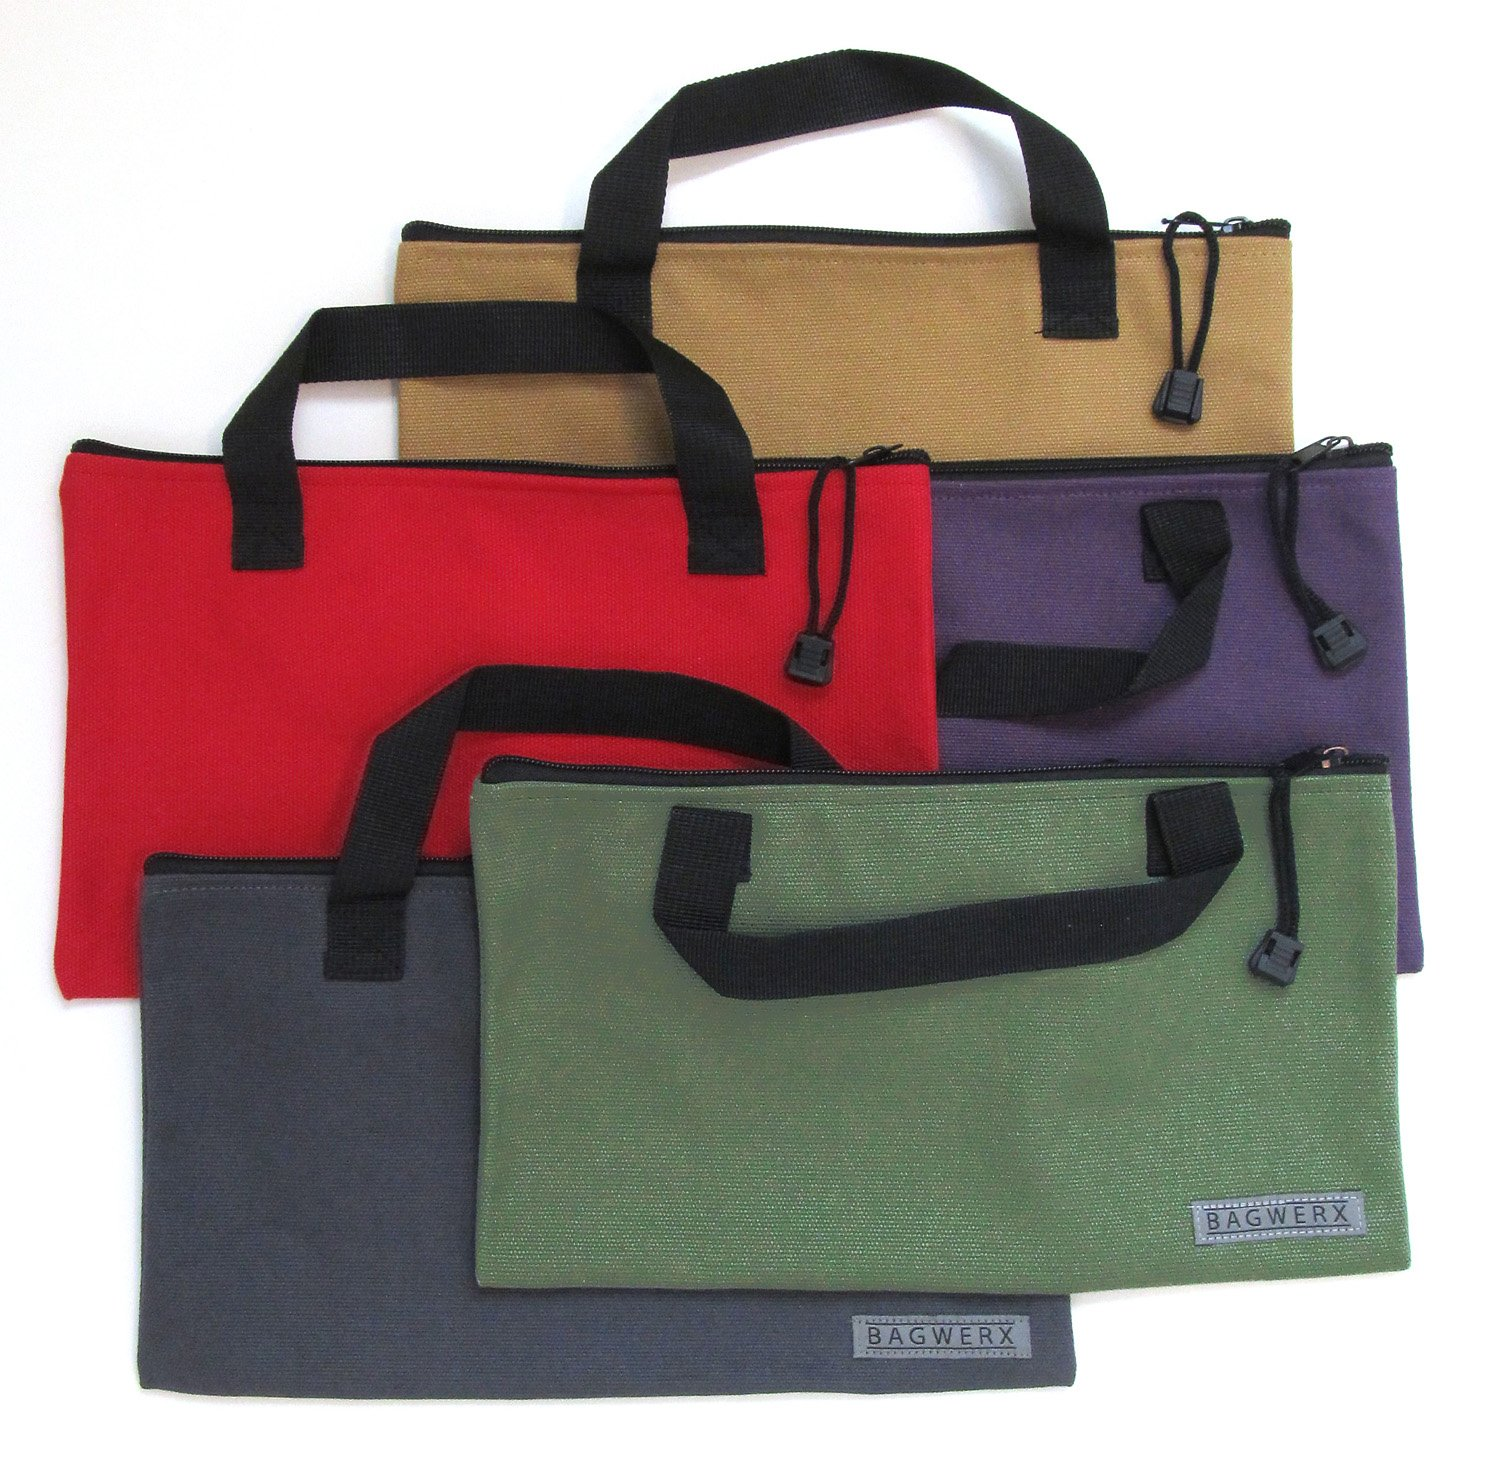 Canvas Tool Bags with Handles - 5 Pack - Heavy Duty 20 Oz. Canvas Multi Purpose Bag - Tool Organizer by Bagwerx